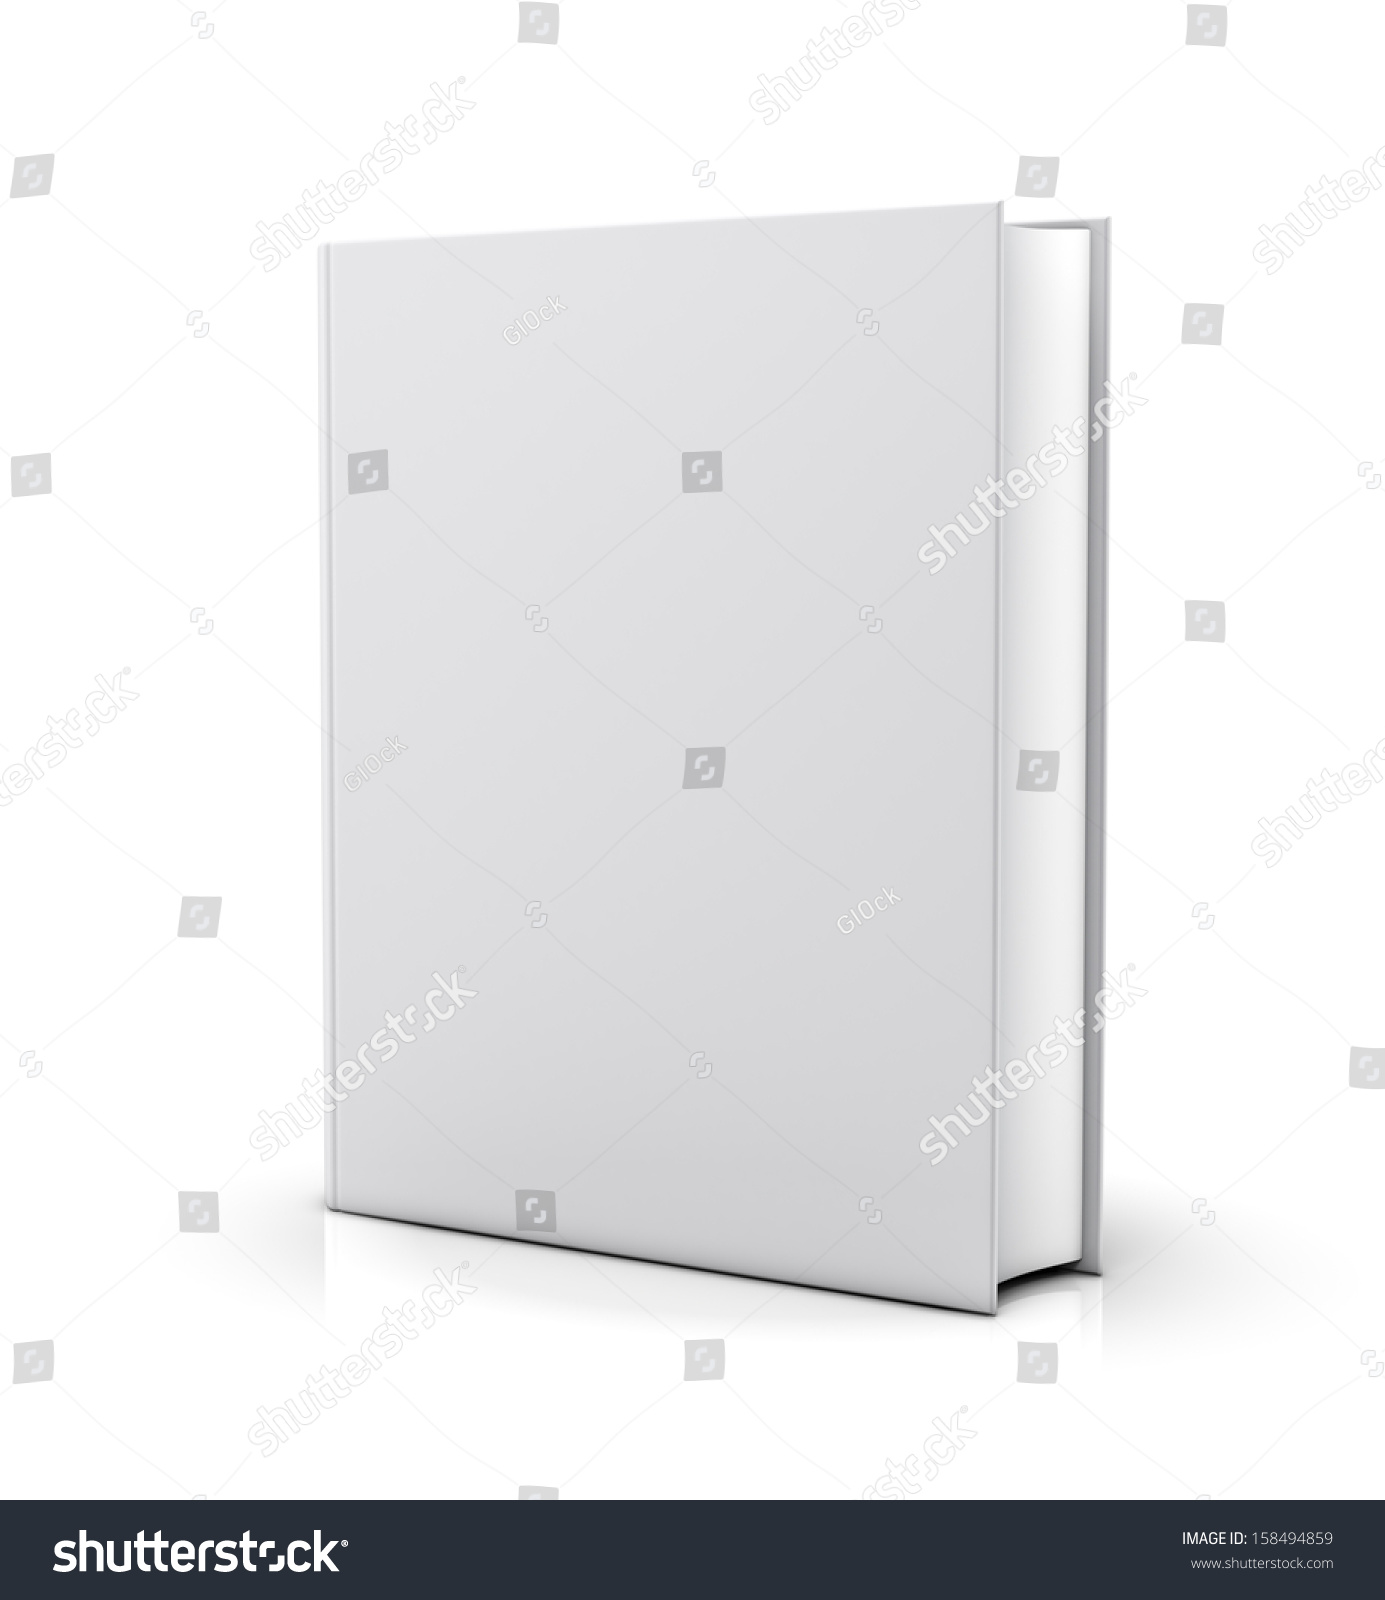 Blank Book Cover Background : Blank white book cover isolated on stock illustration